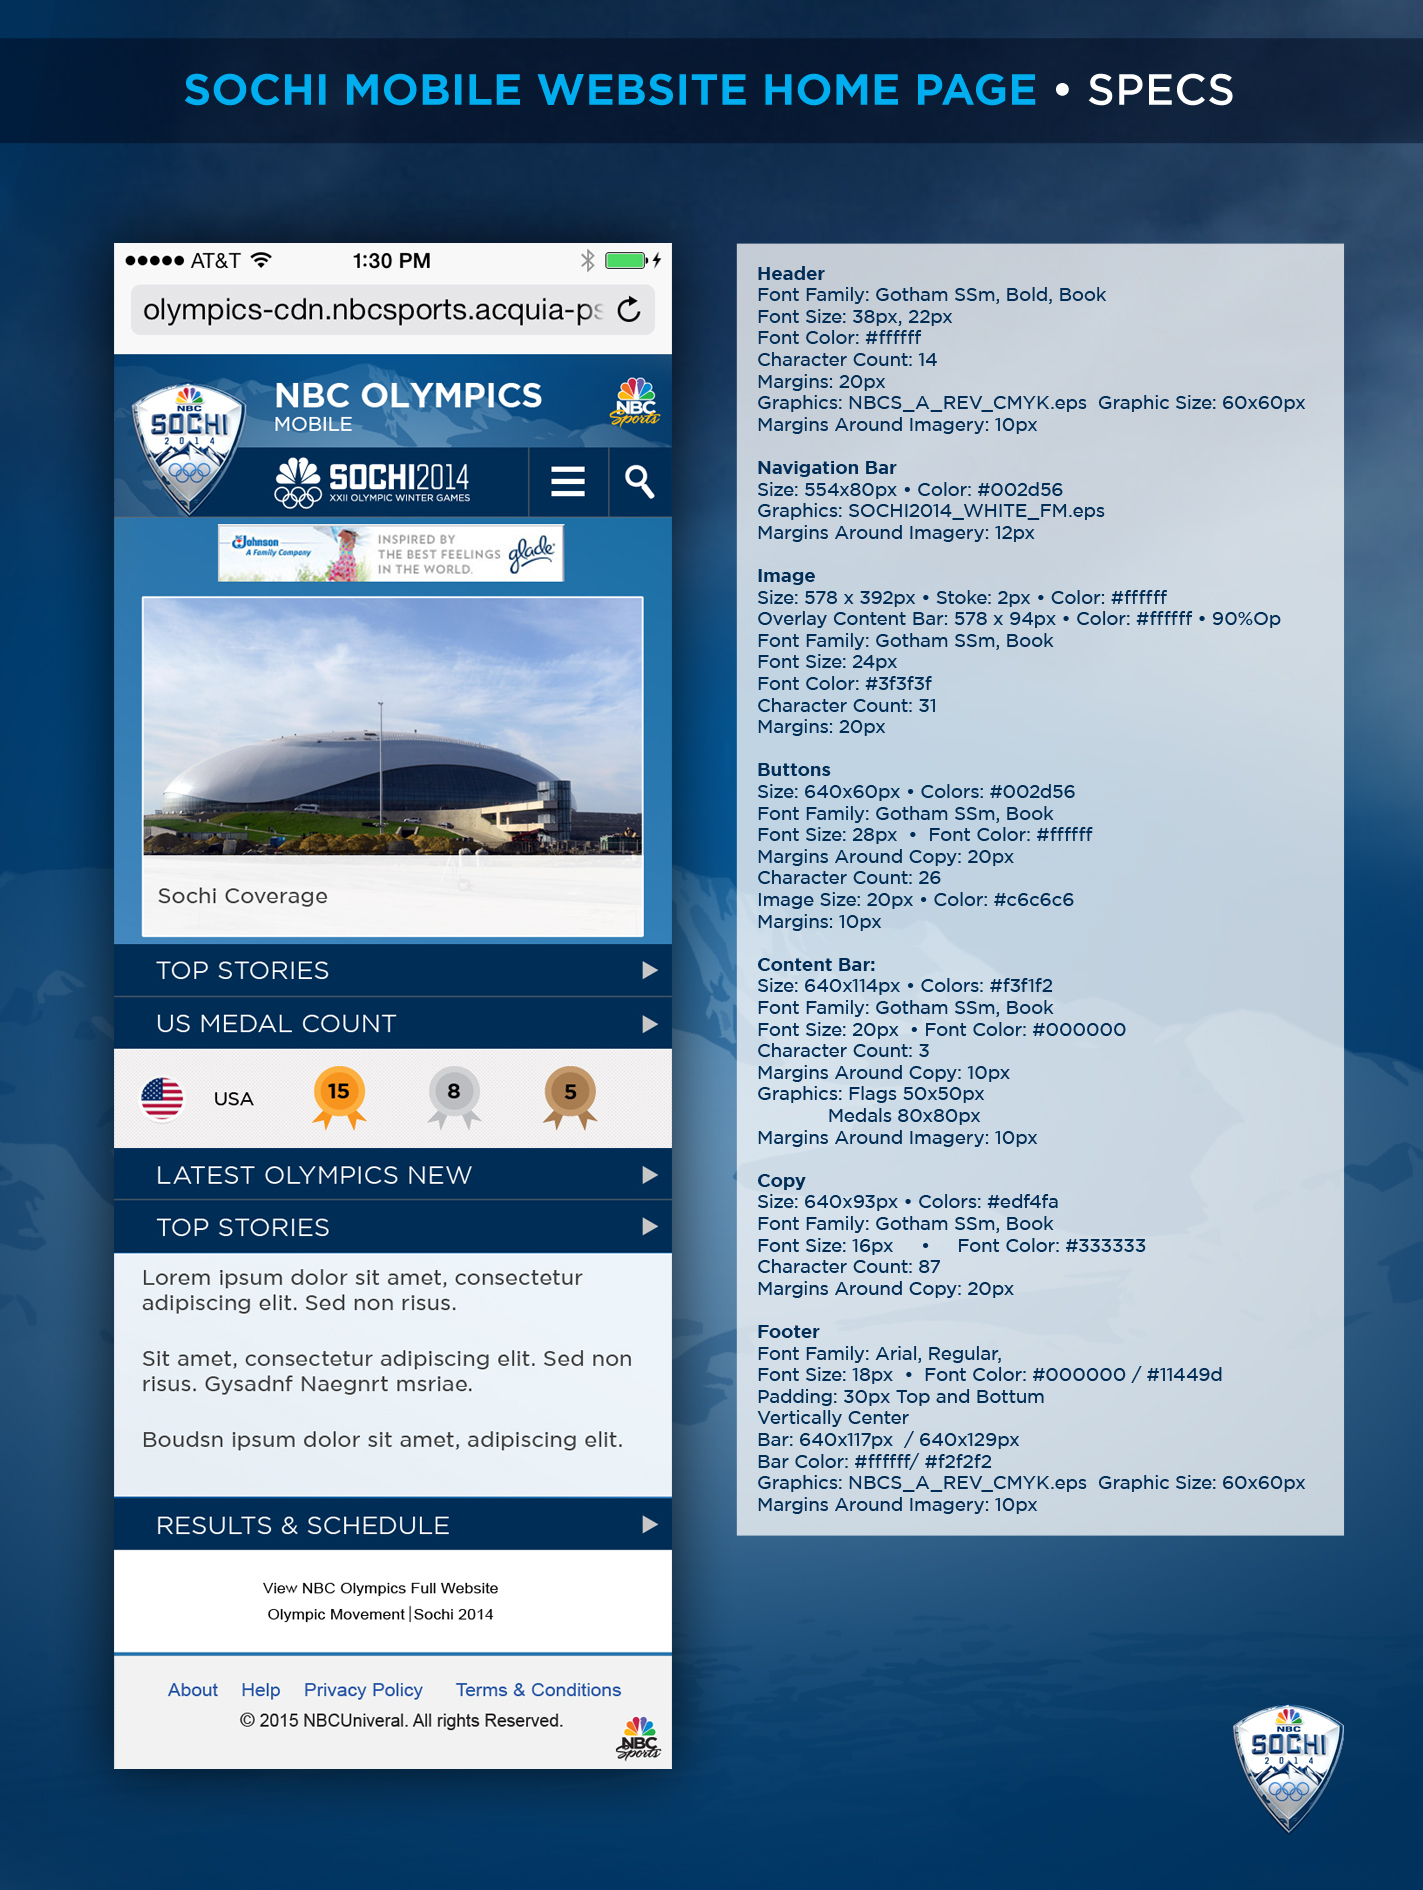 Sochi-Mobile-Website-Style-Guide-Home-Page.jpg